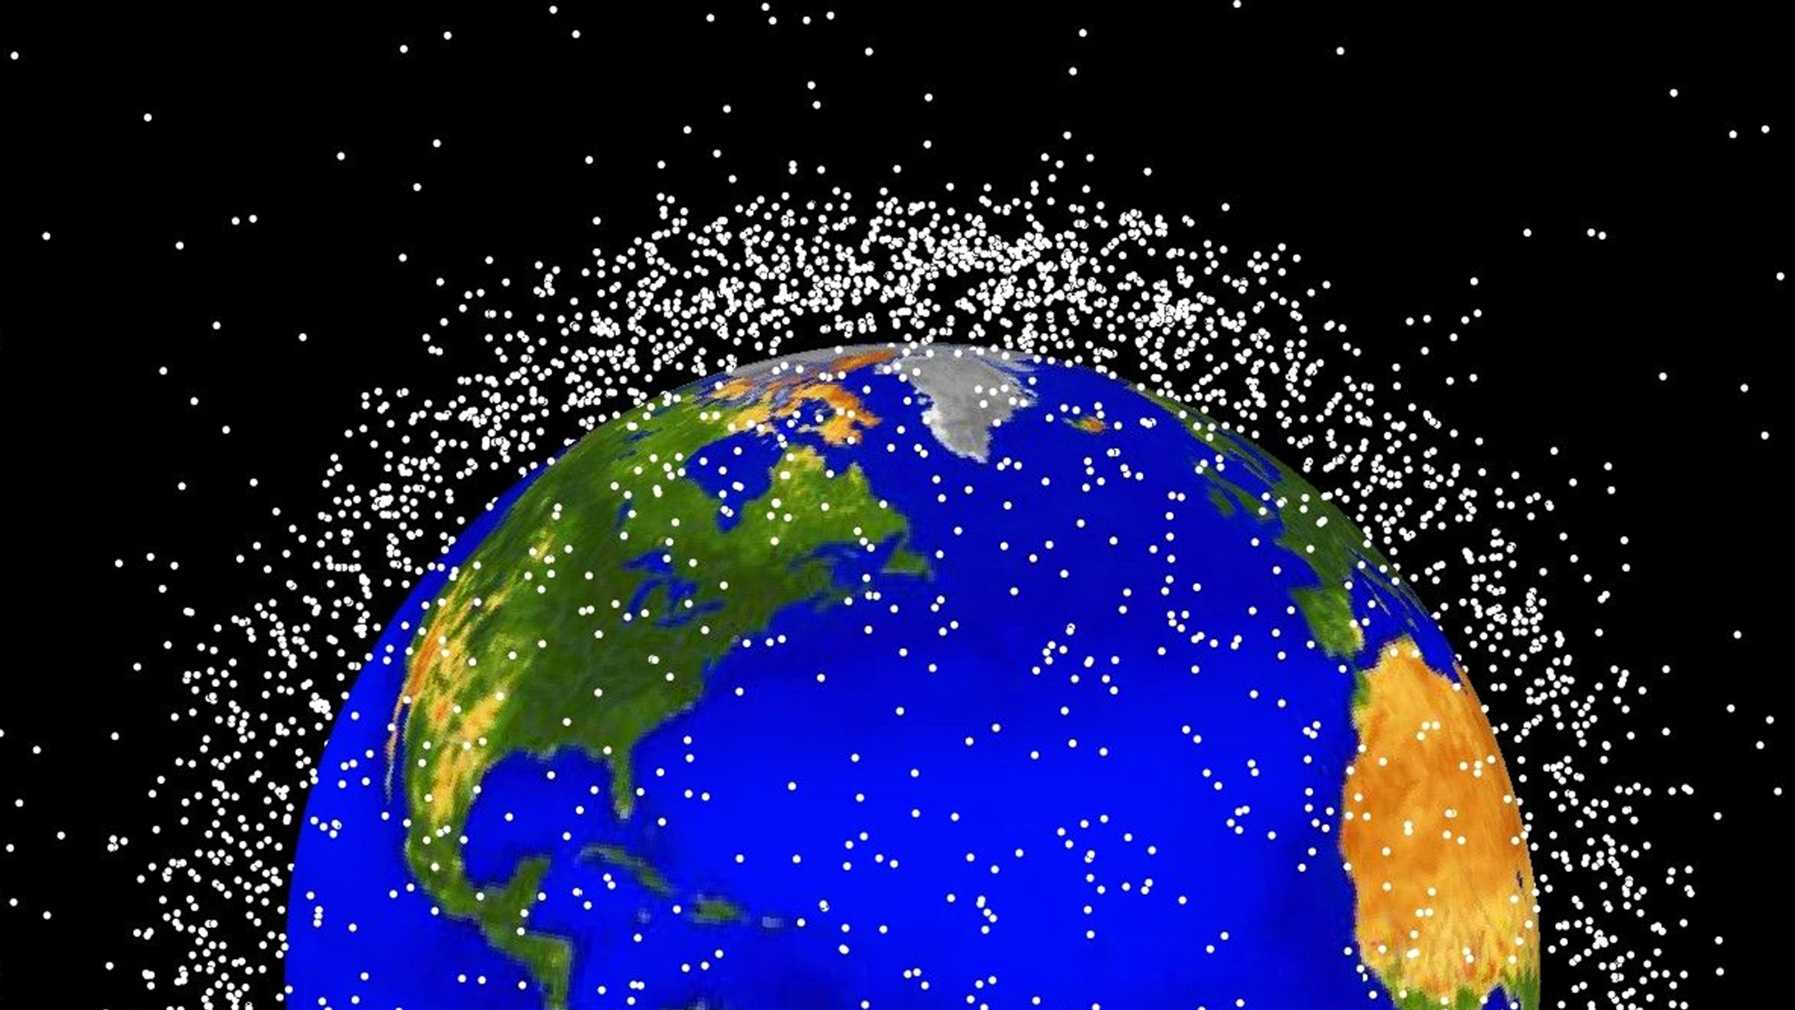 This computer-generated NASA graphic shows objects orbiting Earth orbit that are currently being tracked. Approximately 95 percent of the objects are orbital debris, not functional satellites.